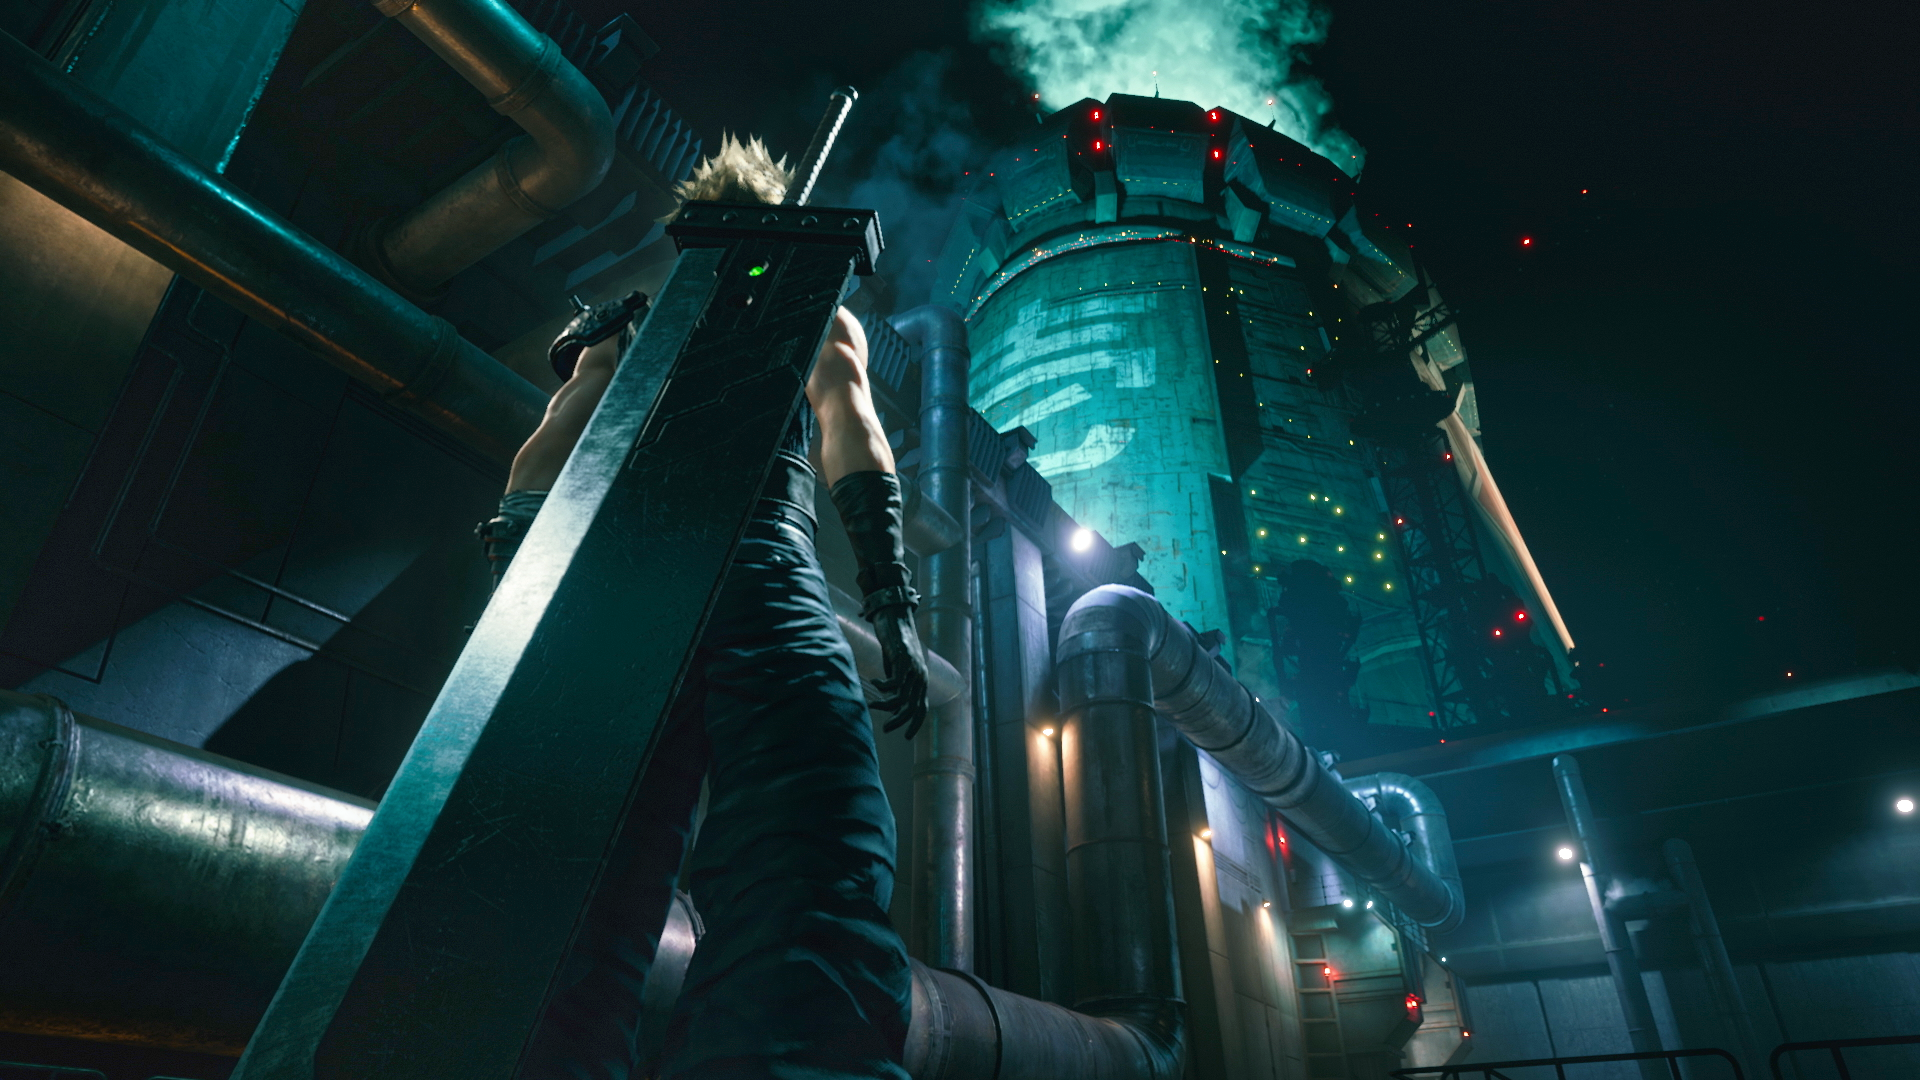 Final Fantasy Vii Remake Hands On My Reservations Are